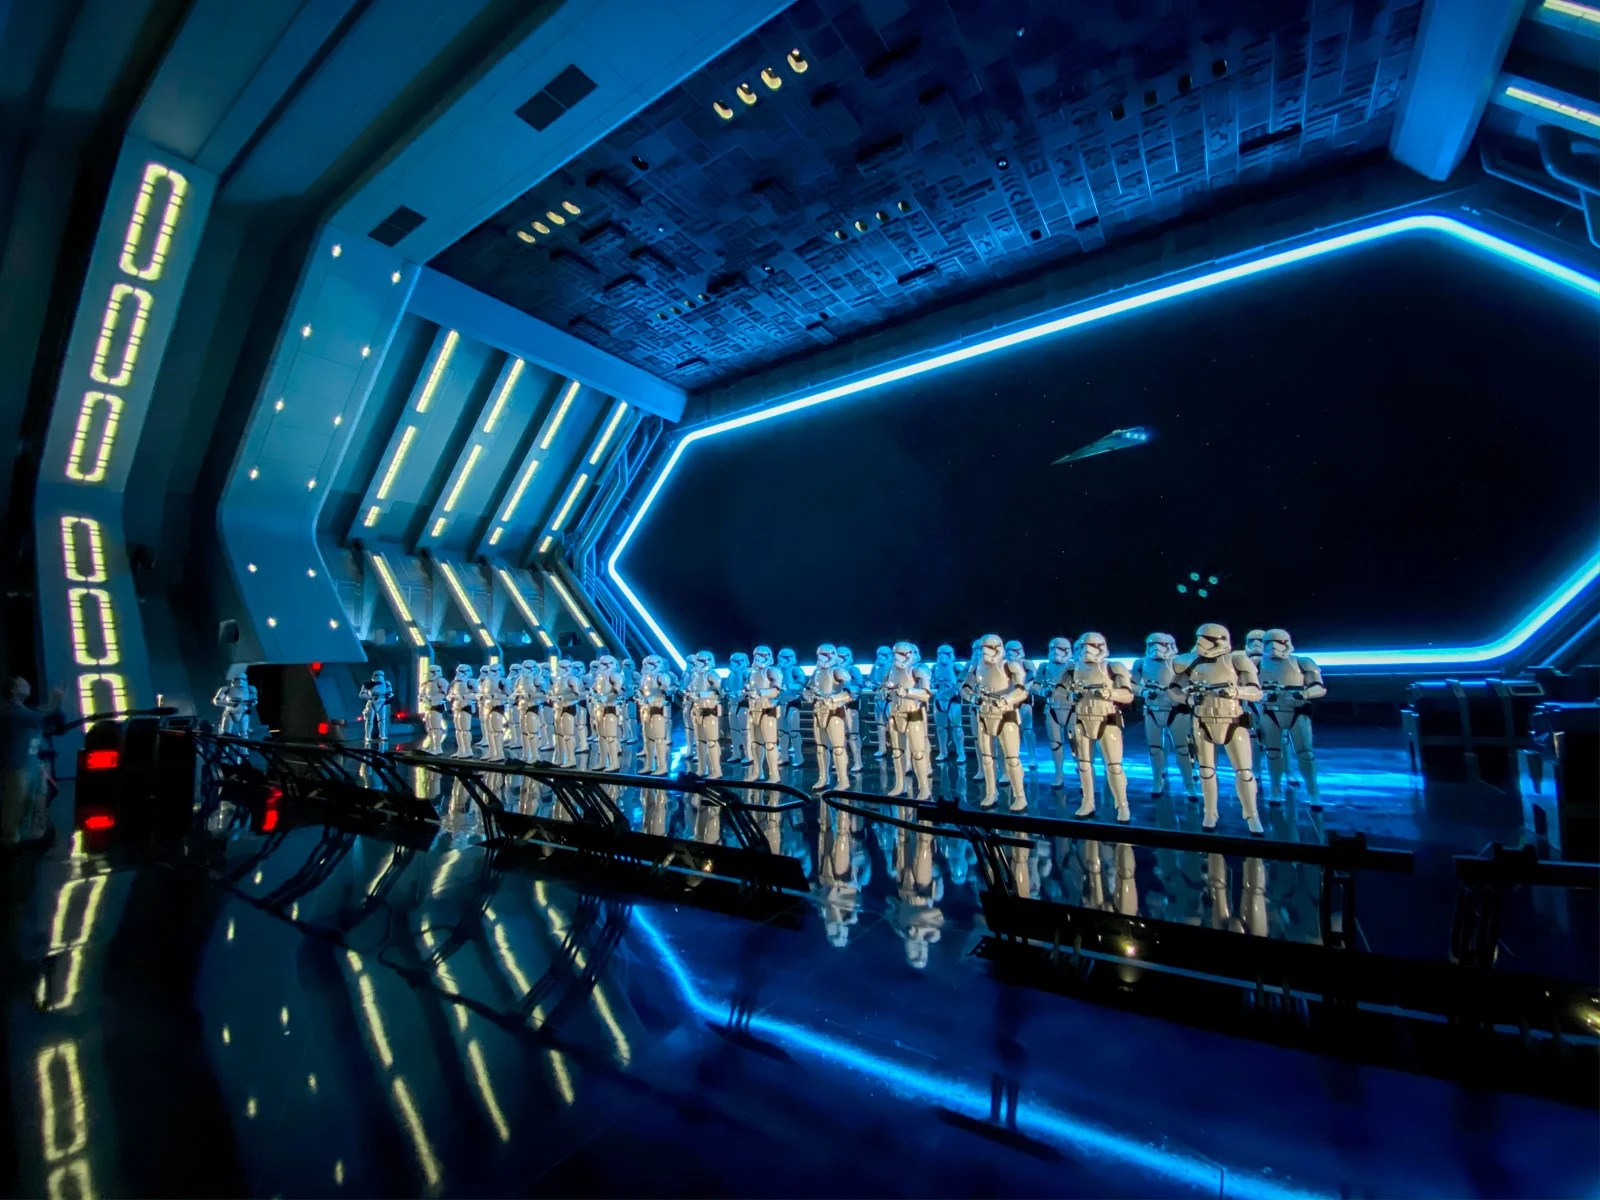 TPG gets first look at Disney's new Star Wars: Rise of the Resistance attraction